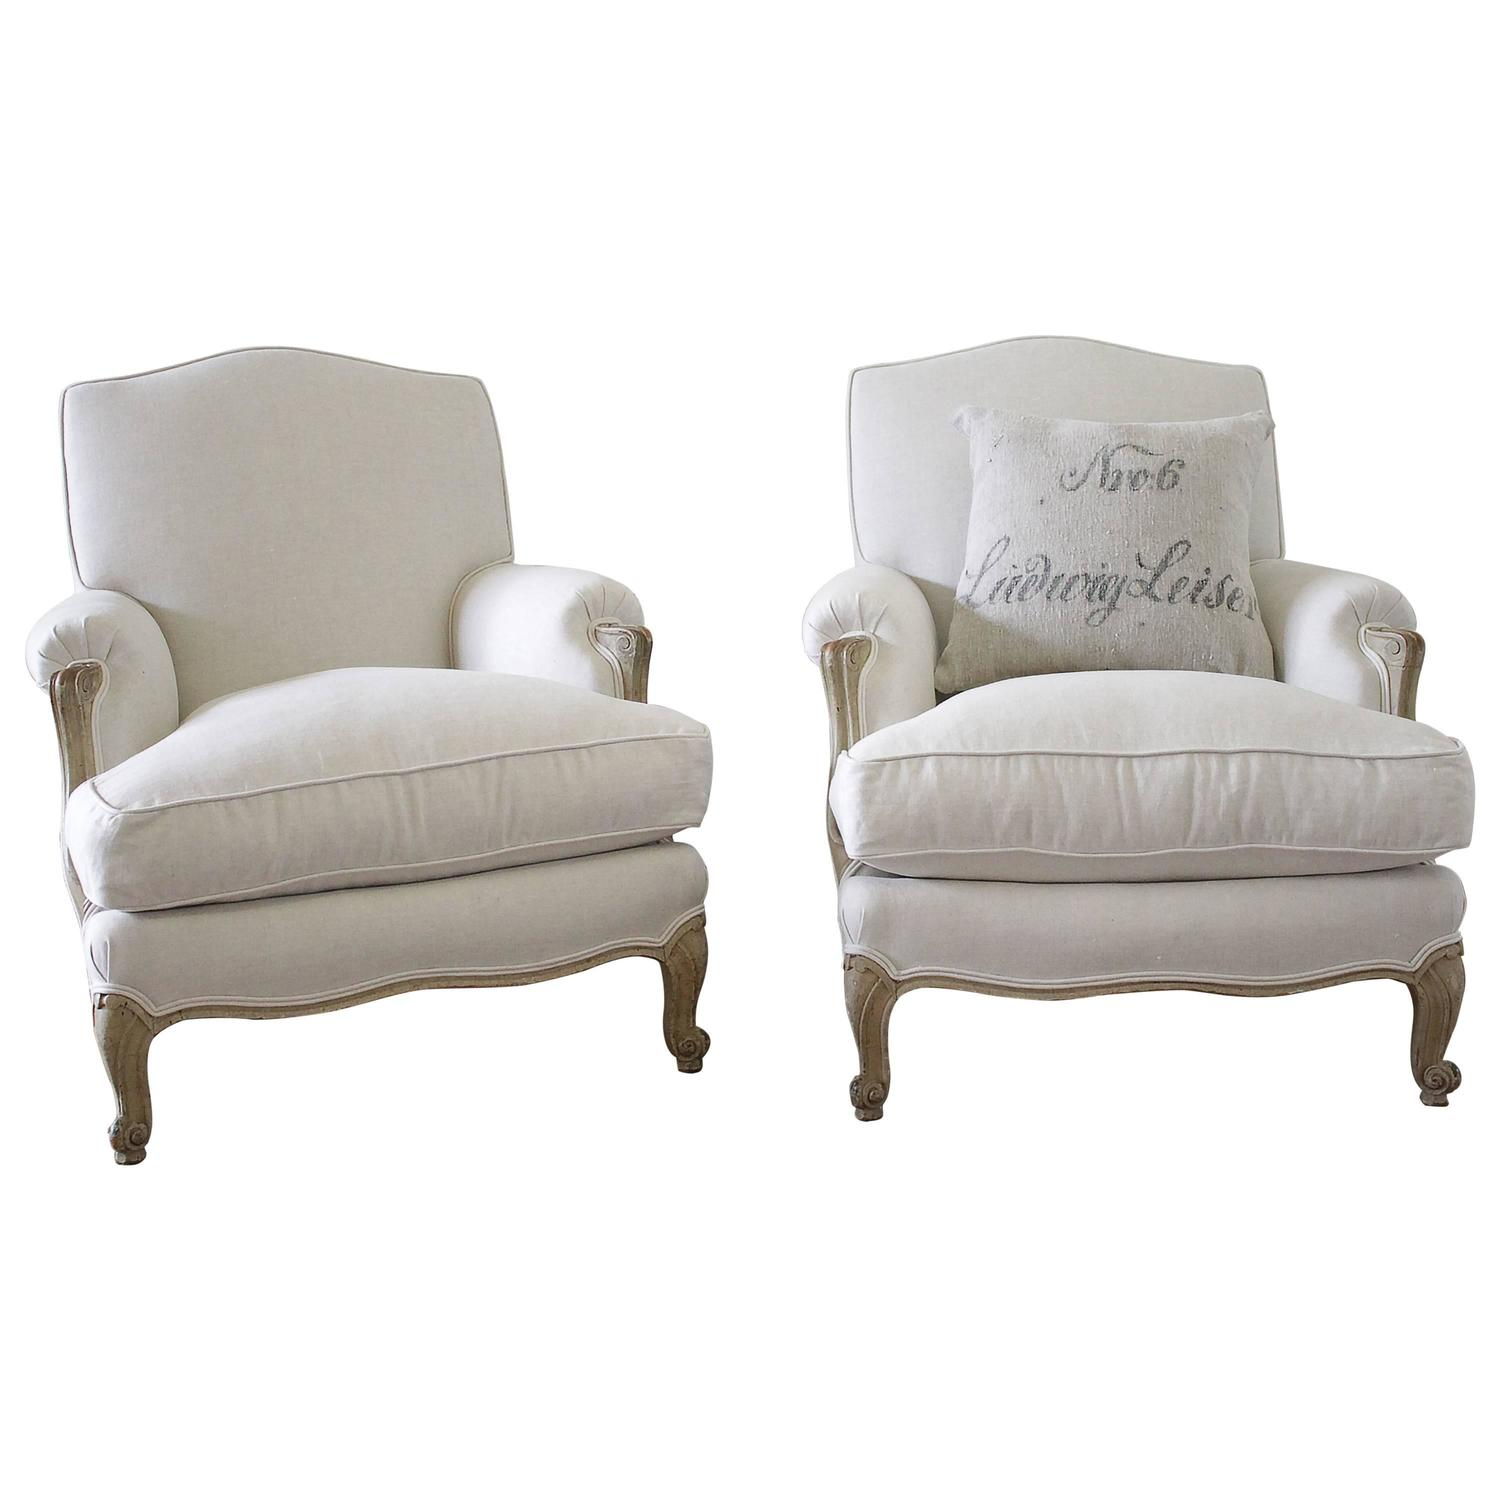 Pair of French Louis XV Style Linen Upholstered Club Chairs at 1stdibs